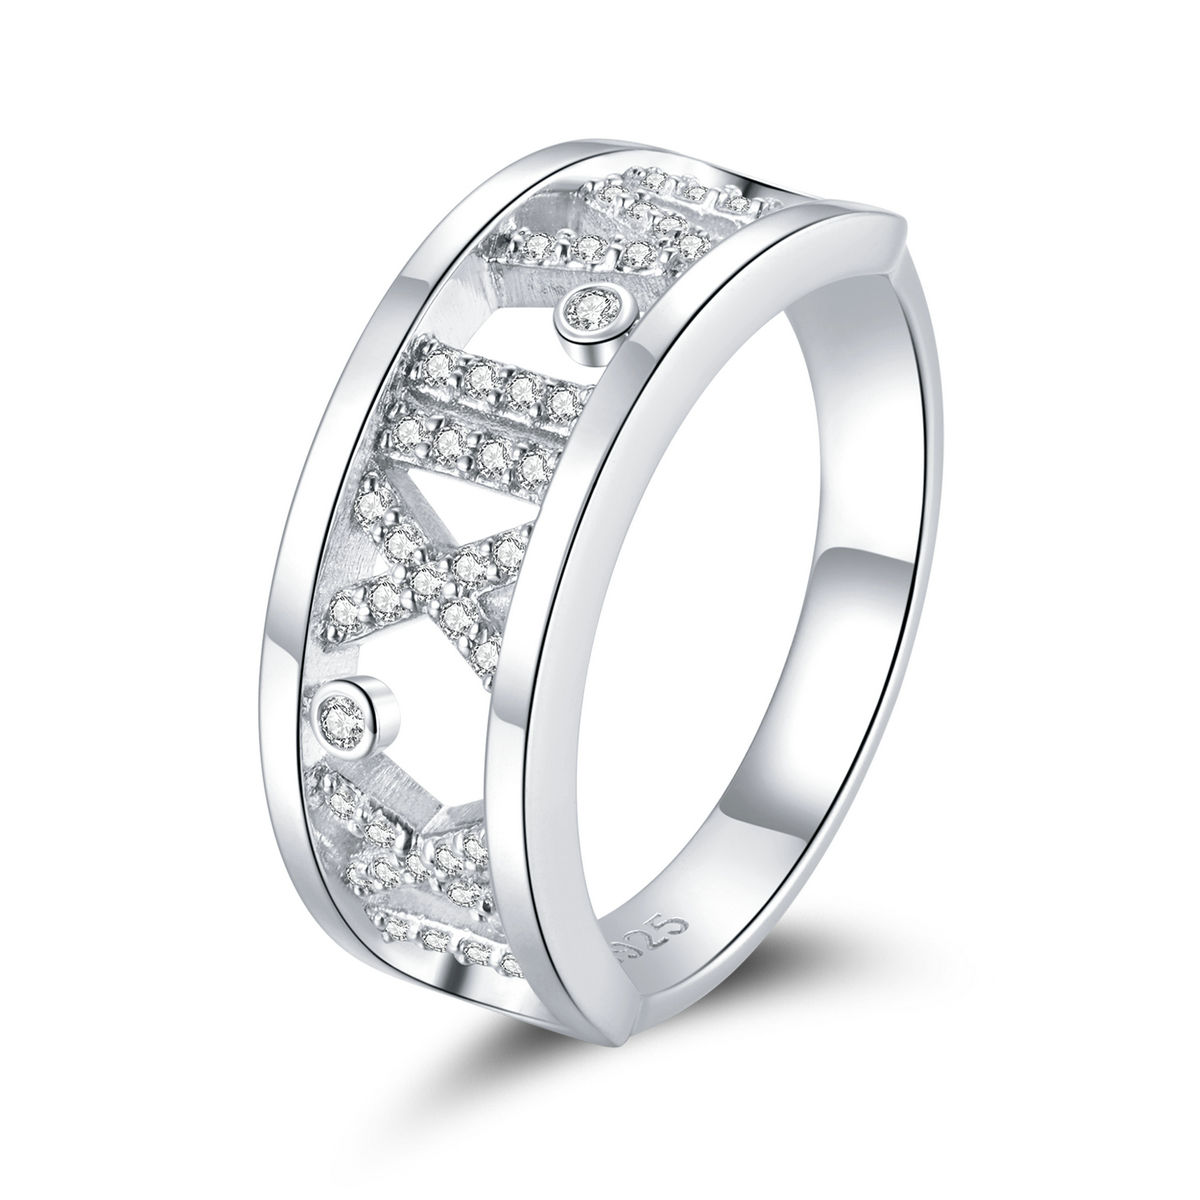 Original design sterling silver S925 platinum plated simple fashion Roman digital ring for man women